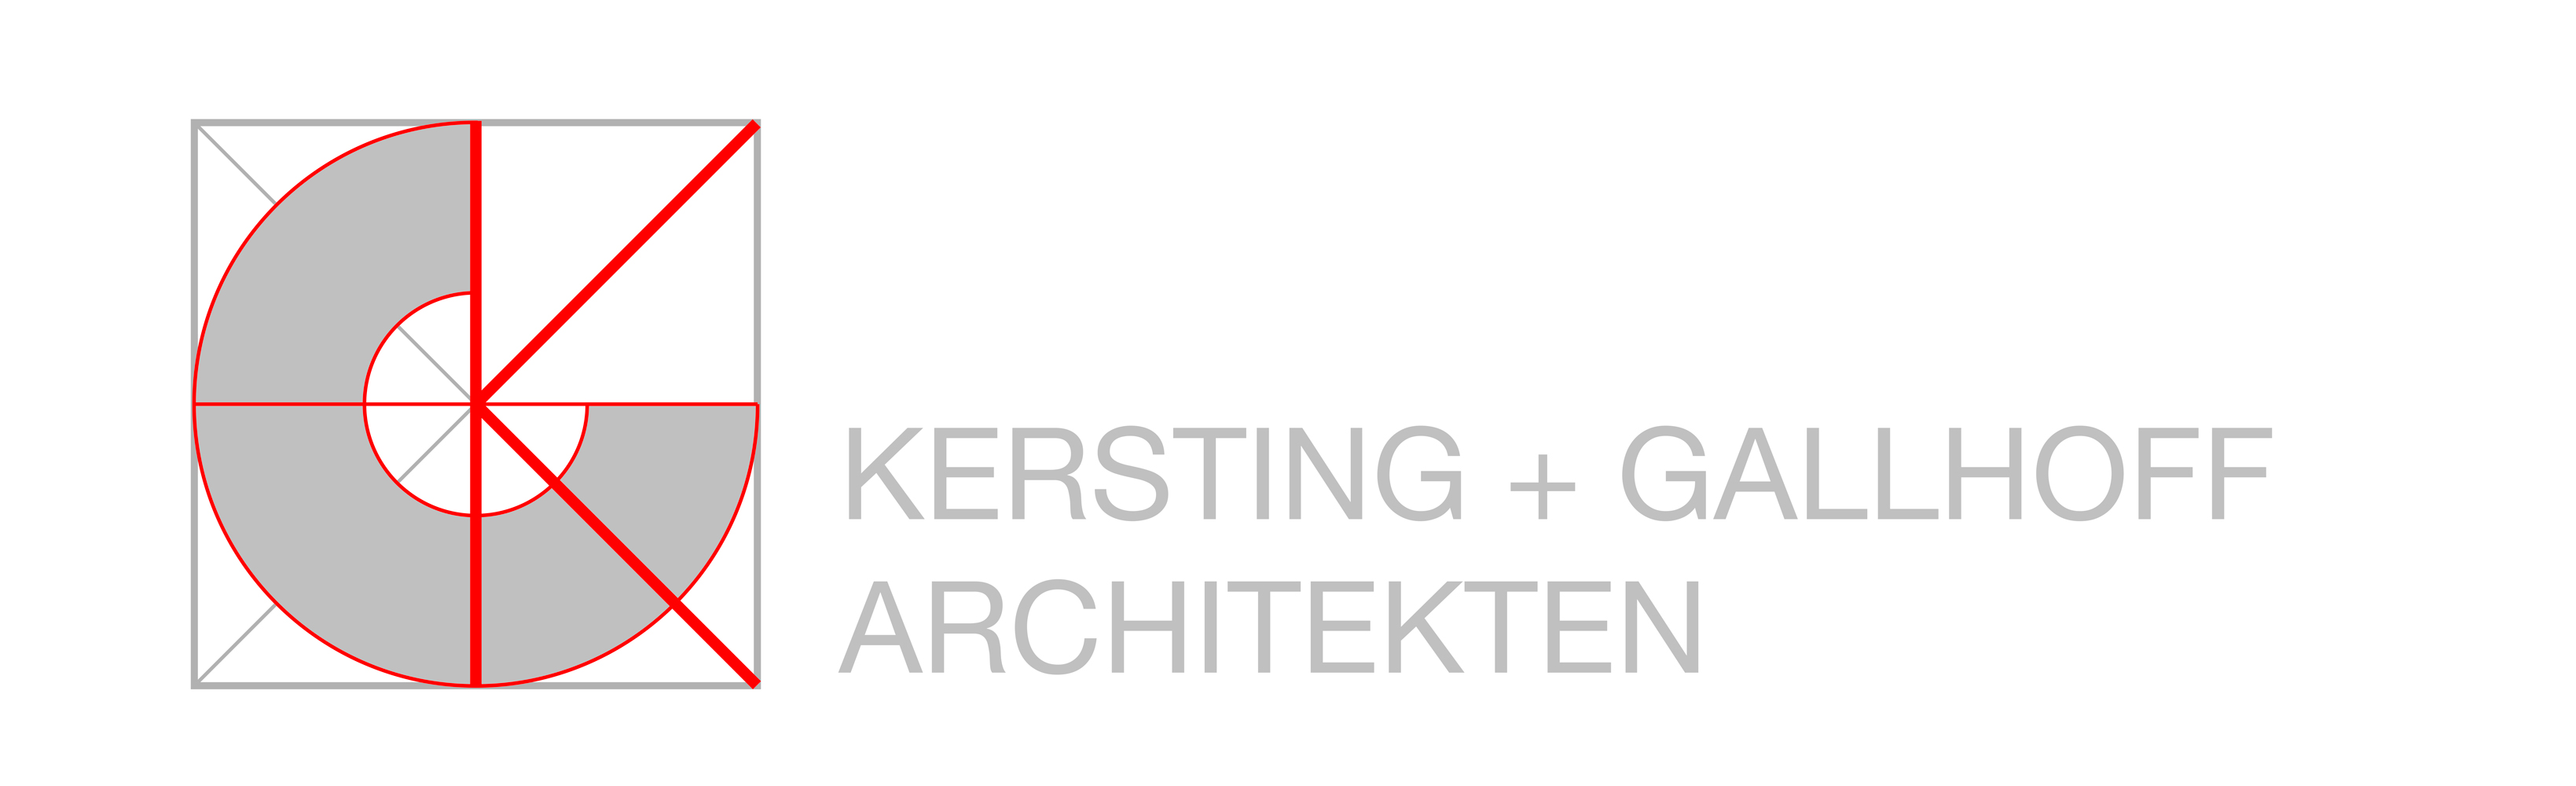 KERSTING + GALLHOFF